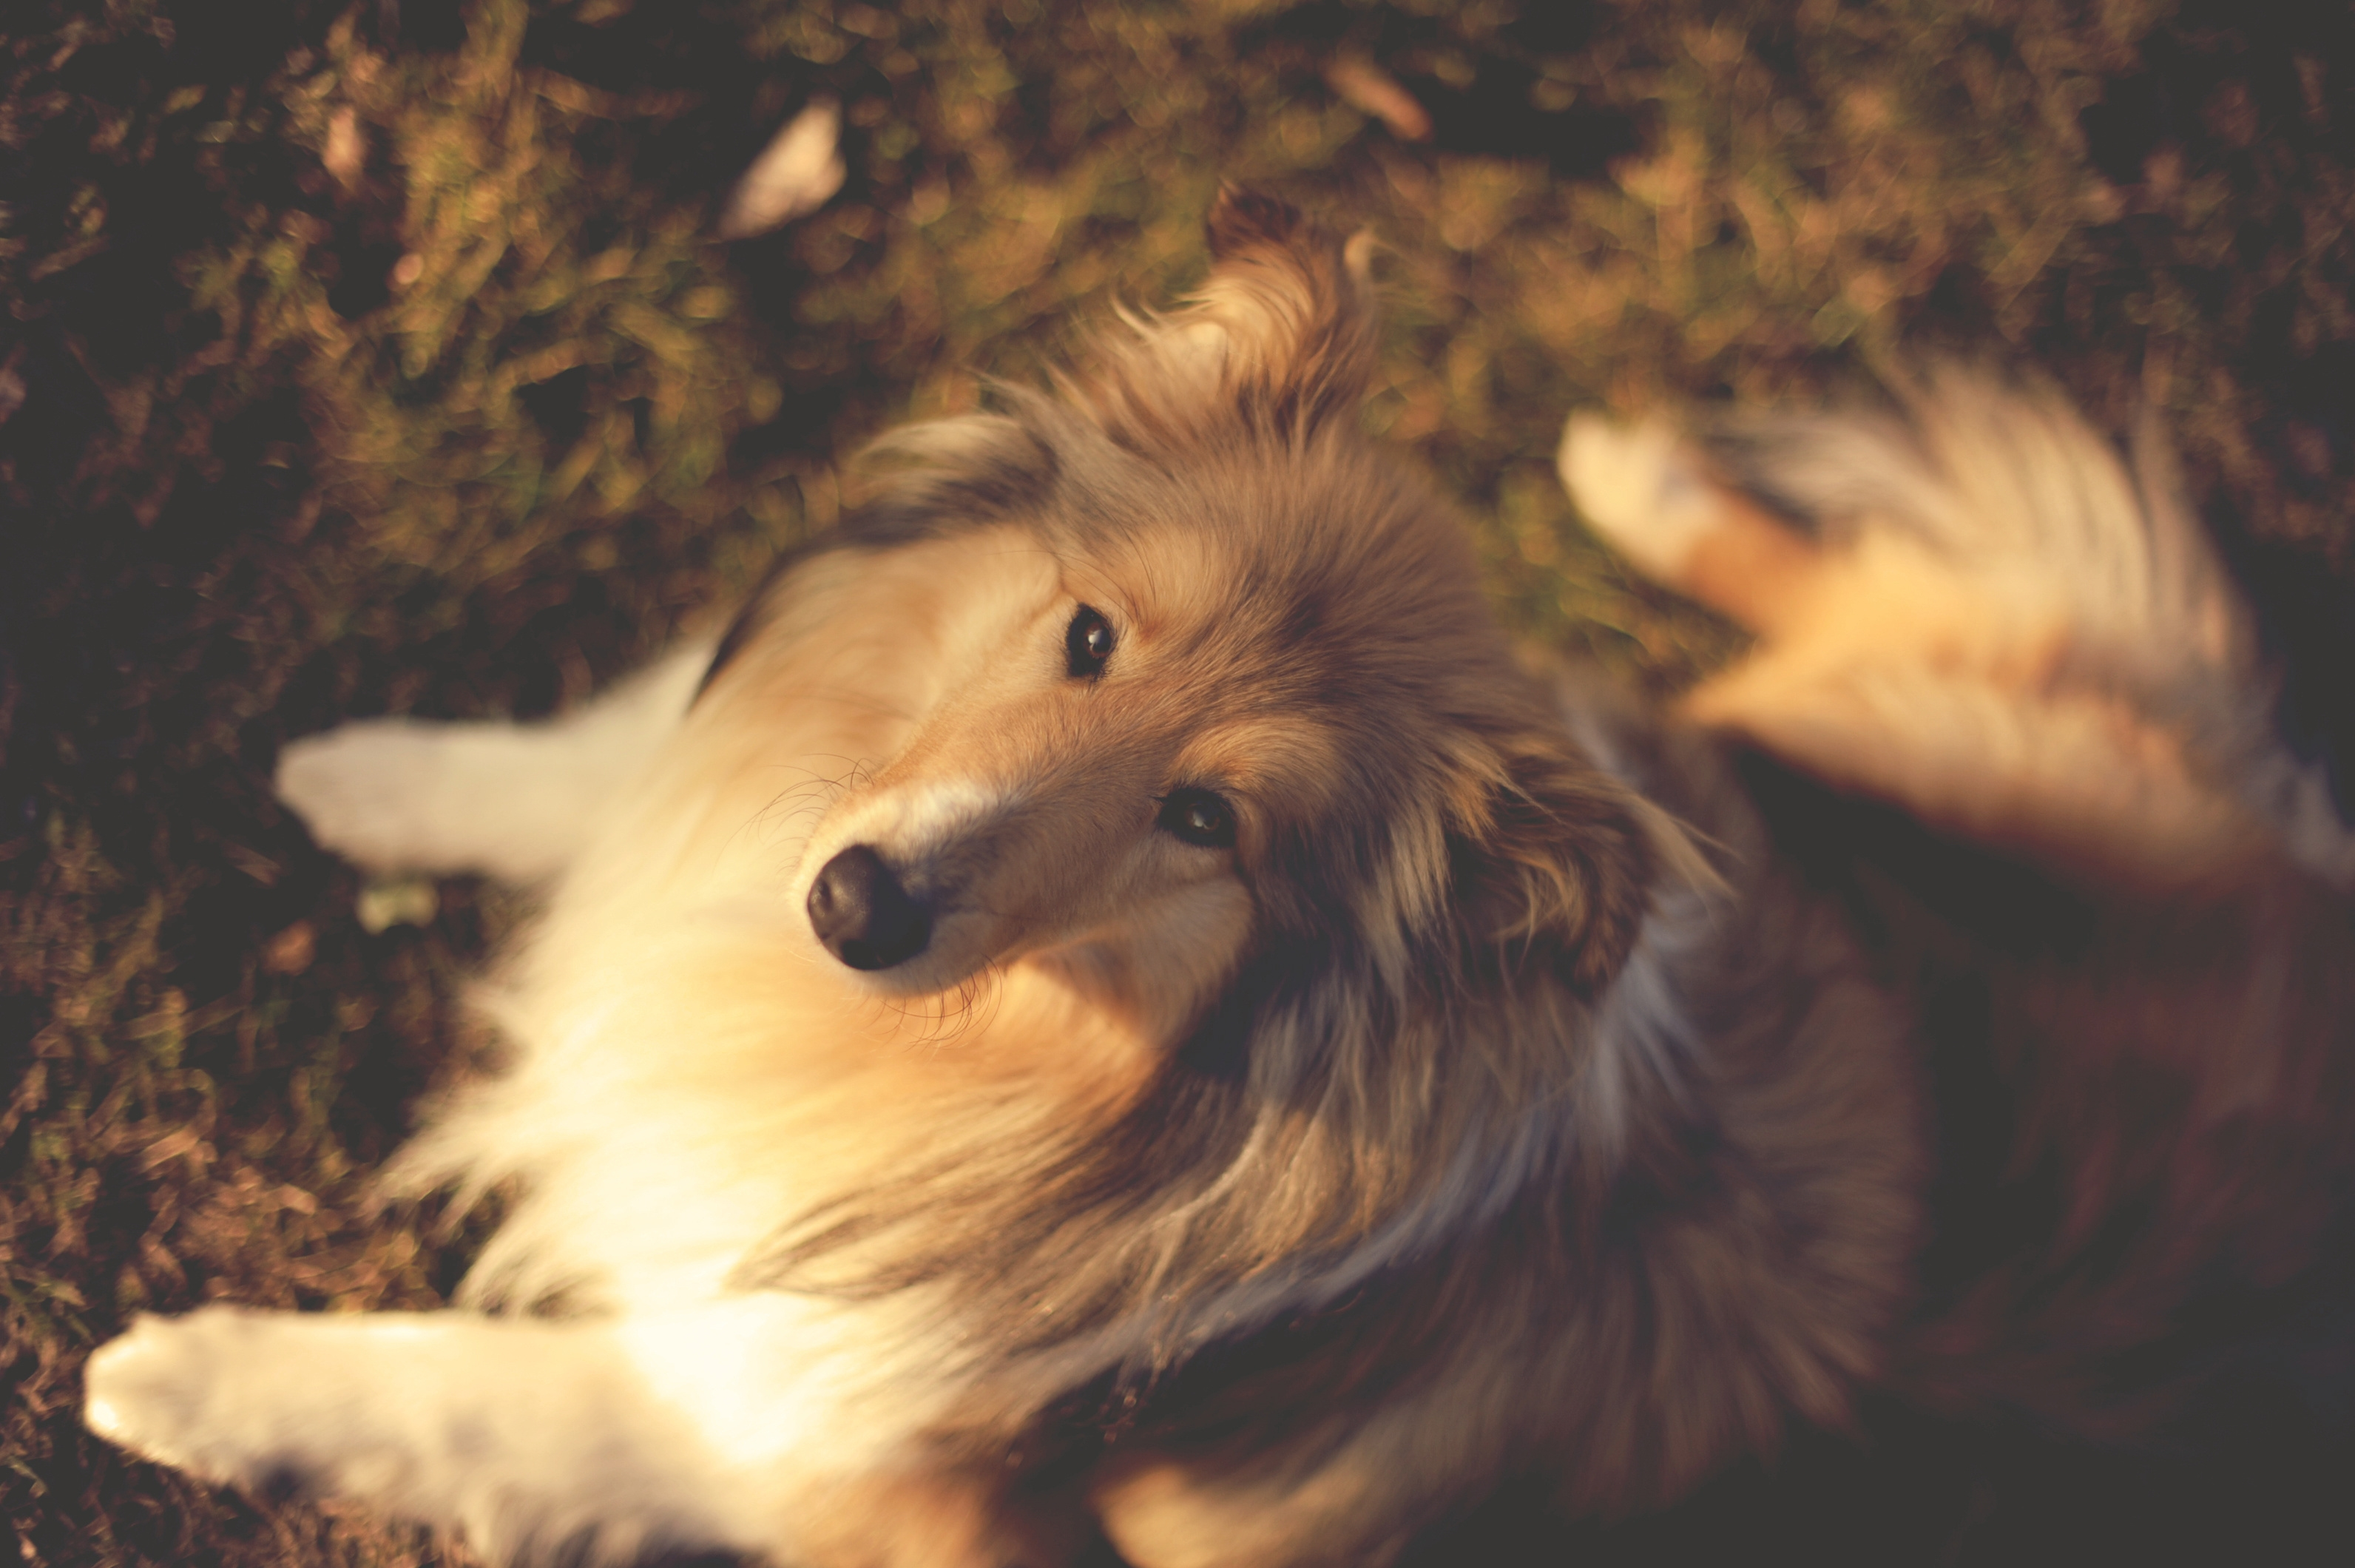 107122 download wallpaper Animals, Nature, Collie, Muzzle, Dog, Dogs screensavers and pictures for free